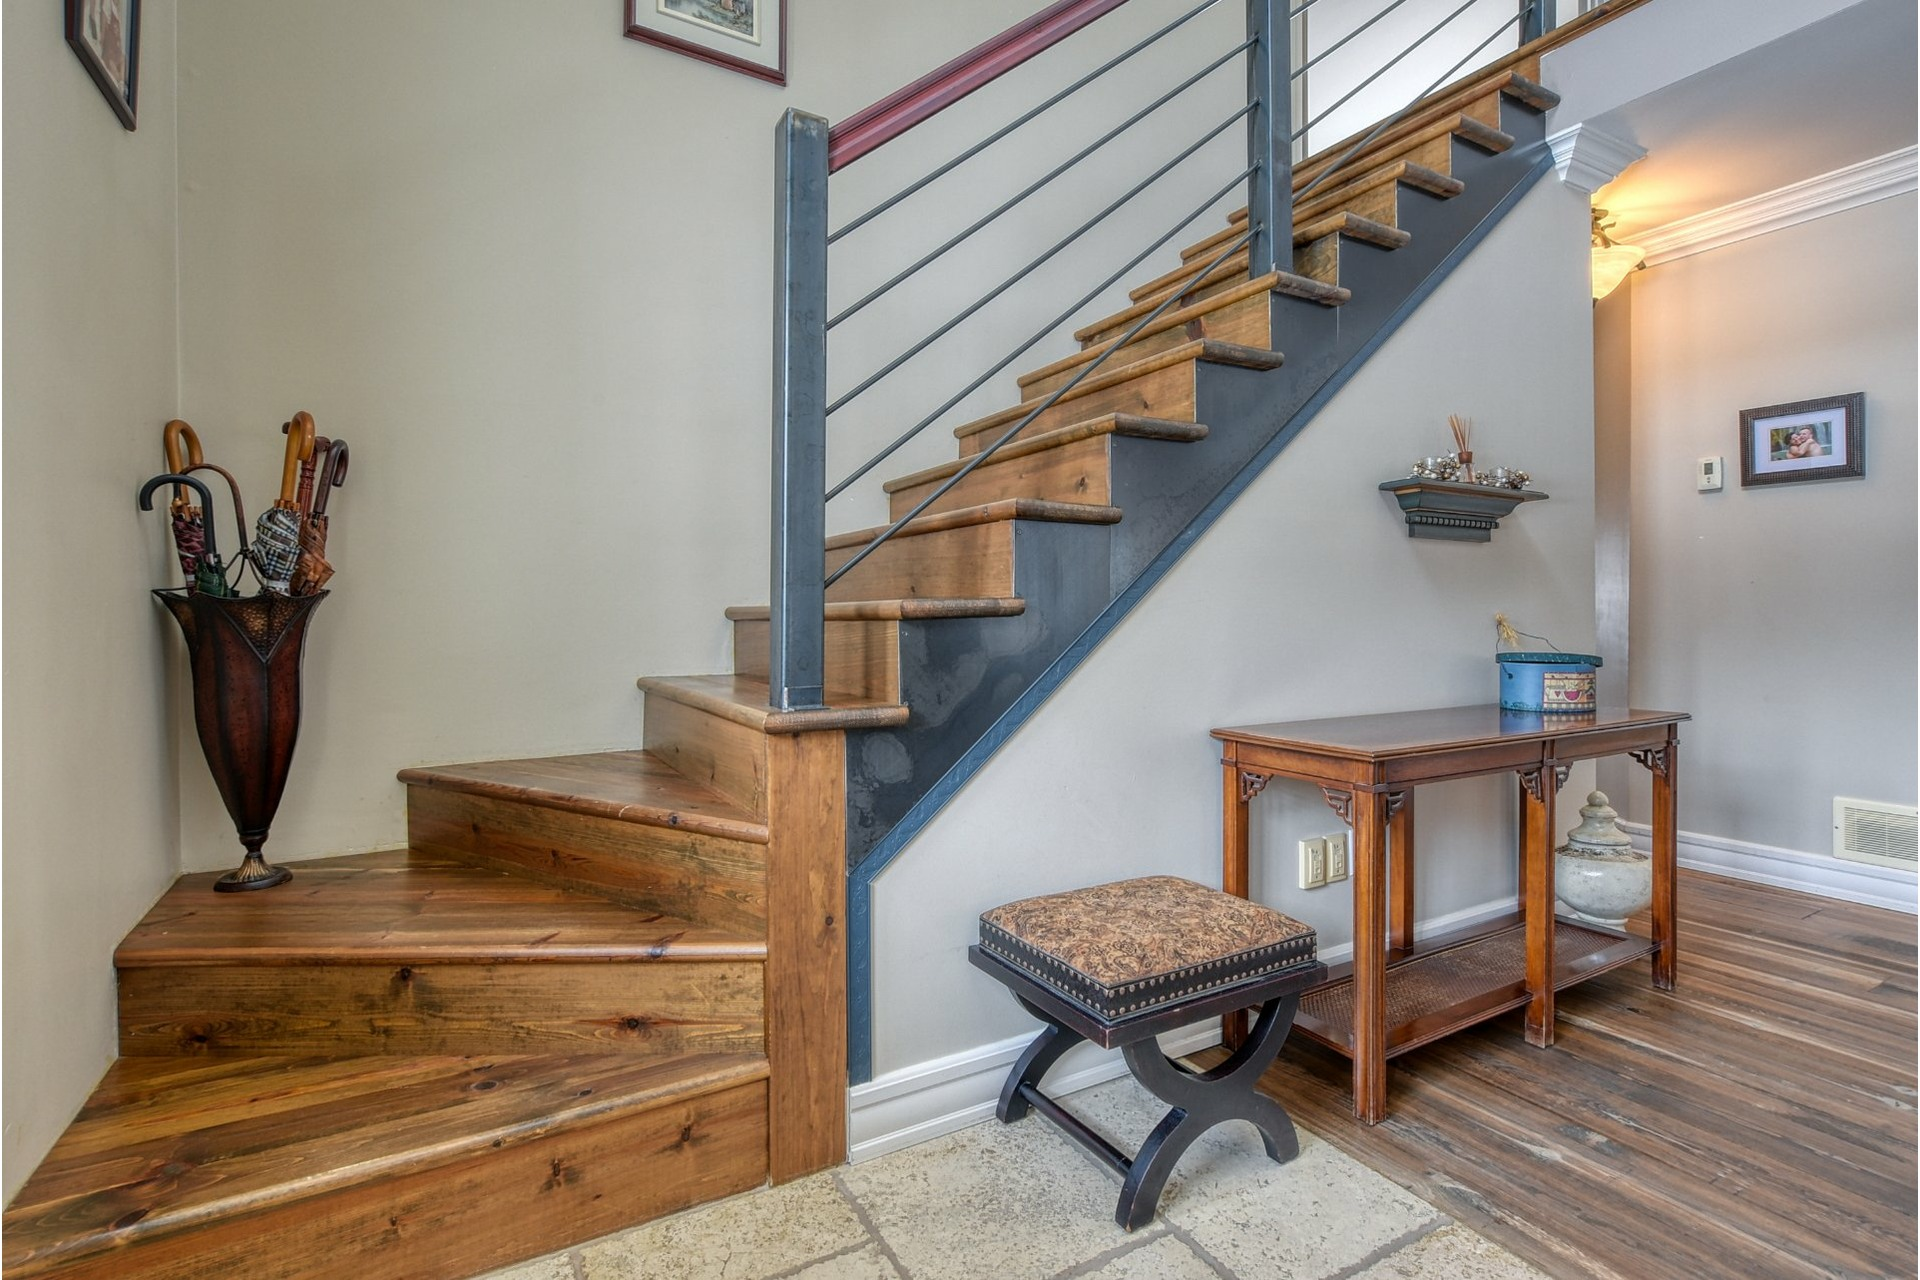 image 3 - House For sale Sainte-Sophie - 14 rooms